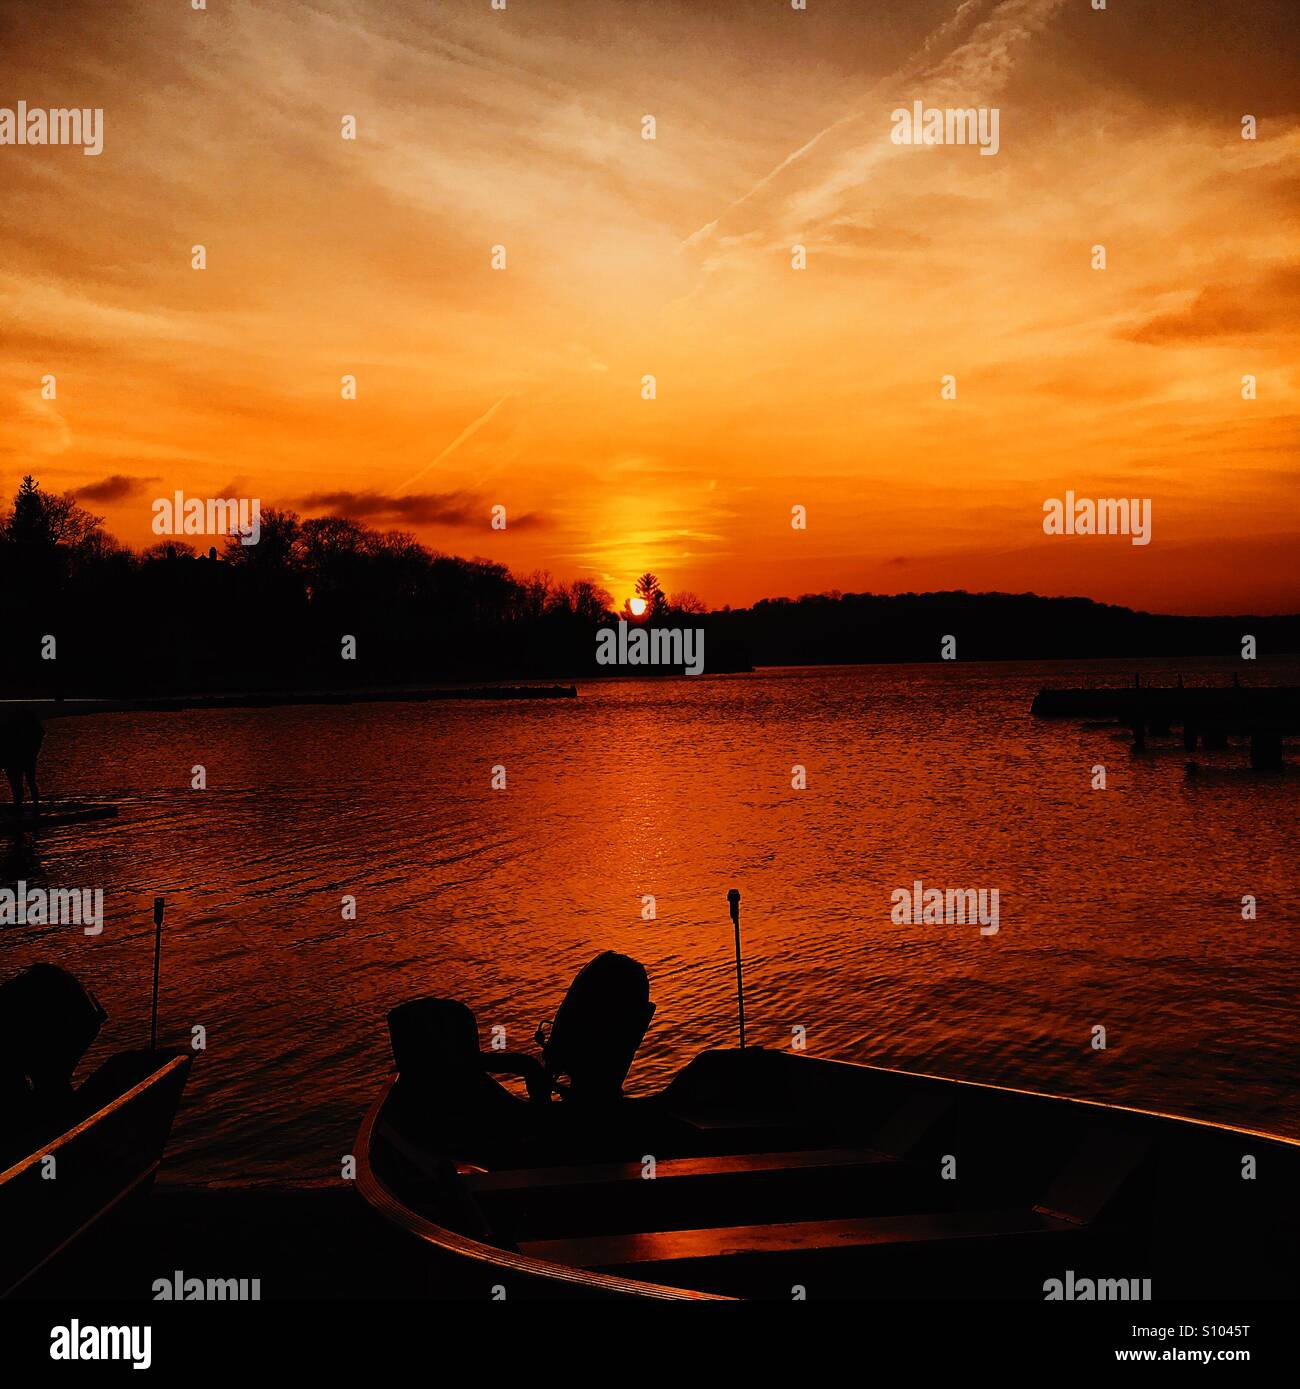 Orange Lake Photo Stock